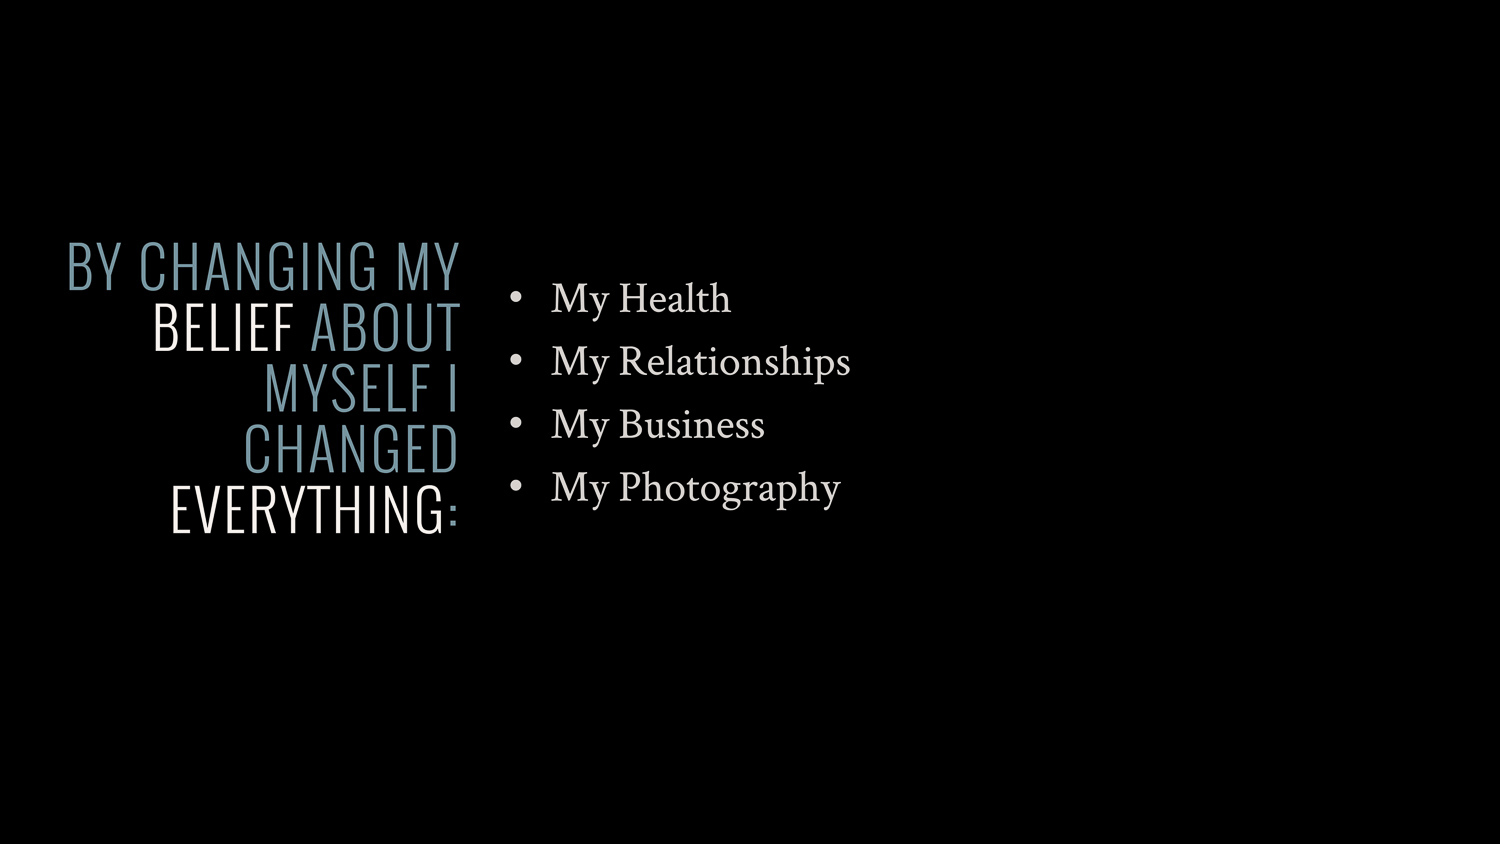 By changing my belief about myself I changed everything: health; relationships; business; photography.